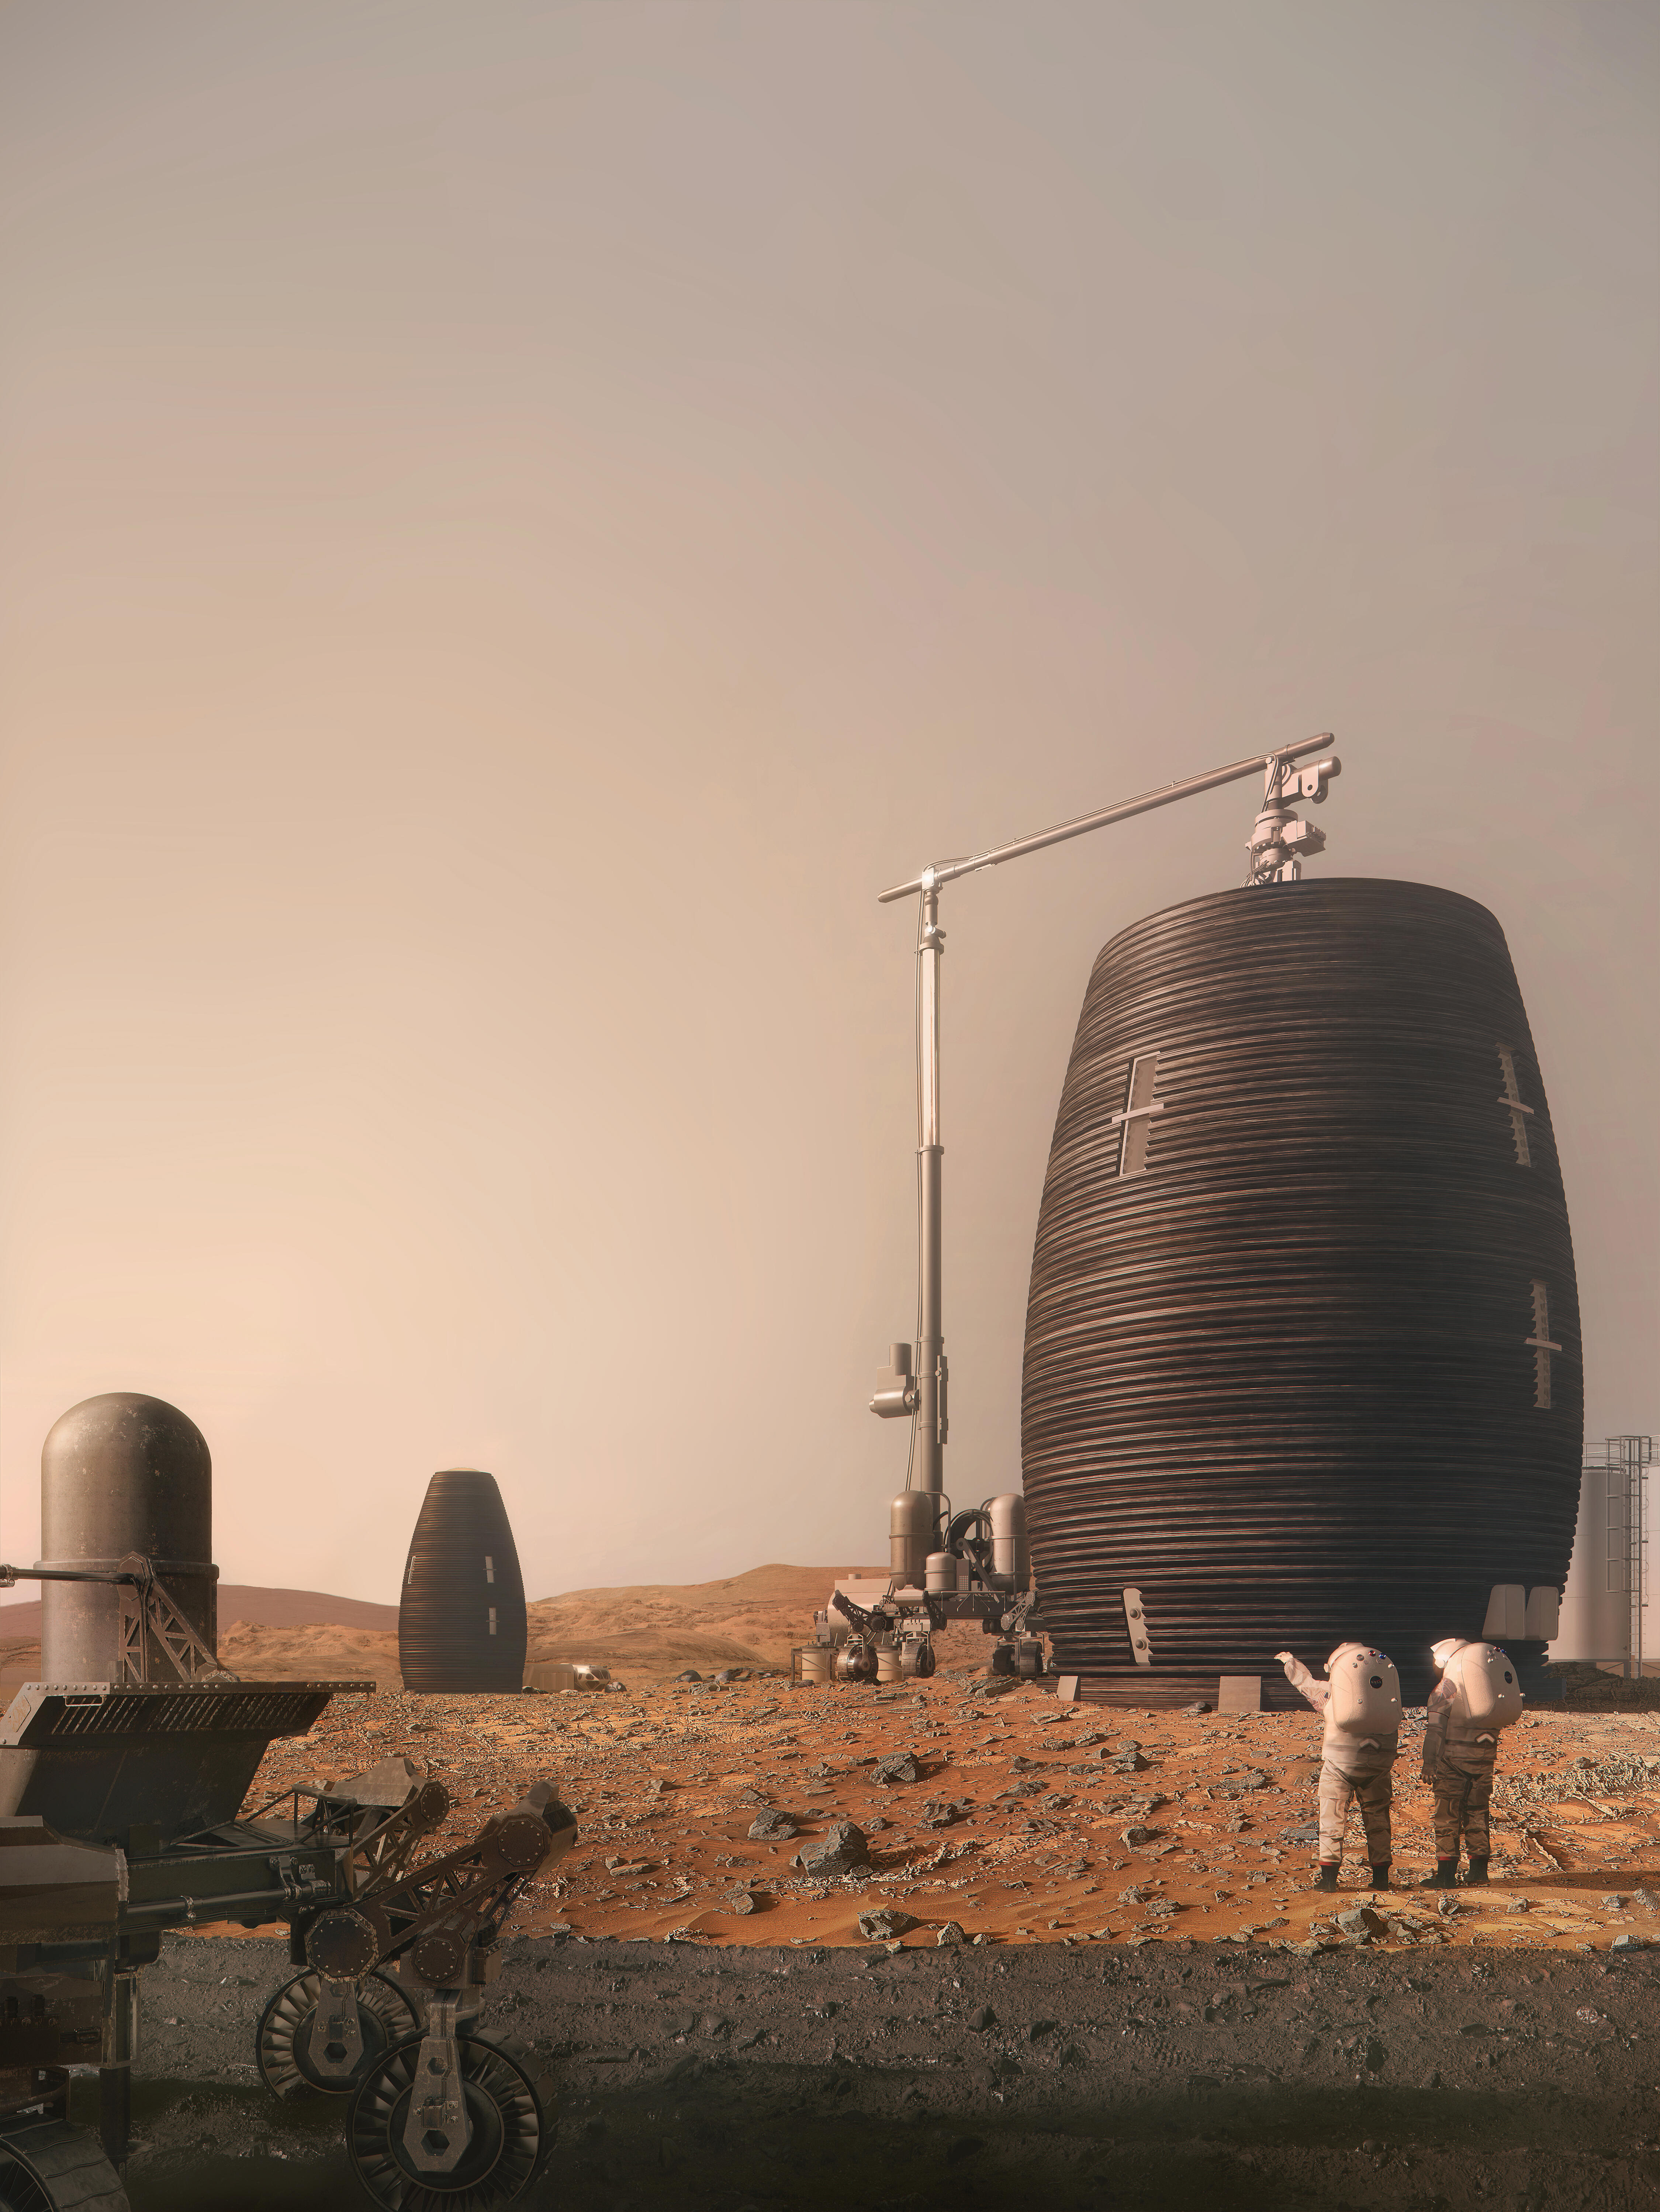 3D-printed from Martian rock